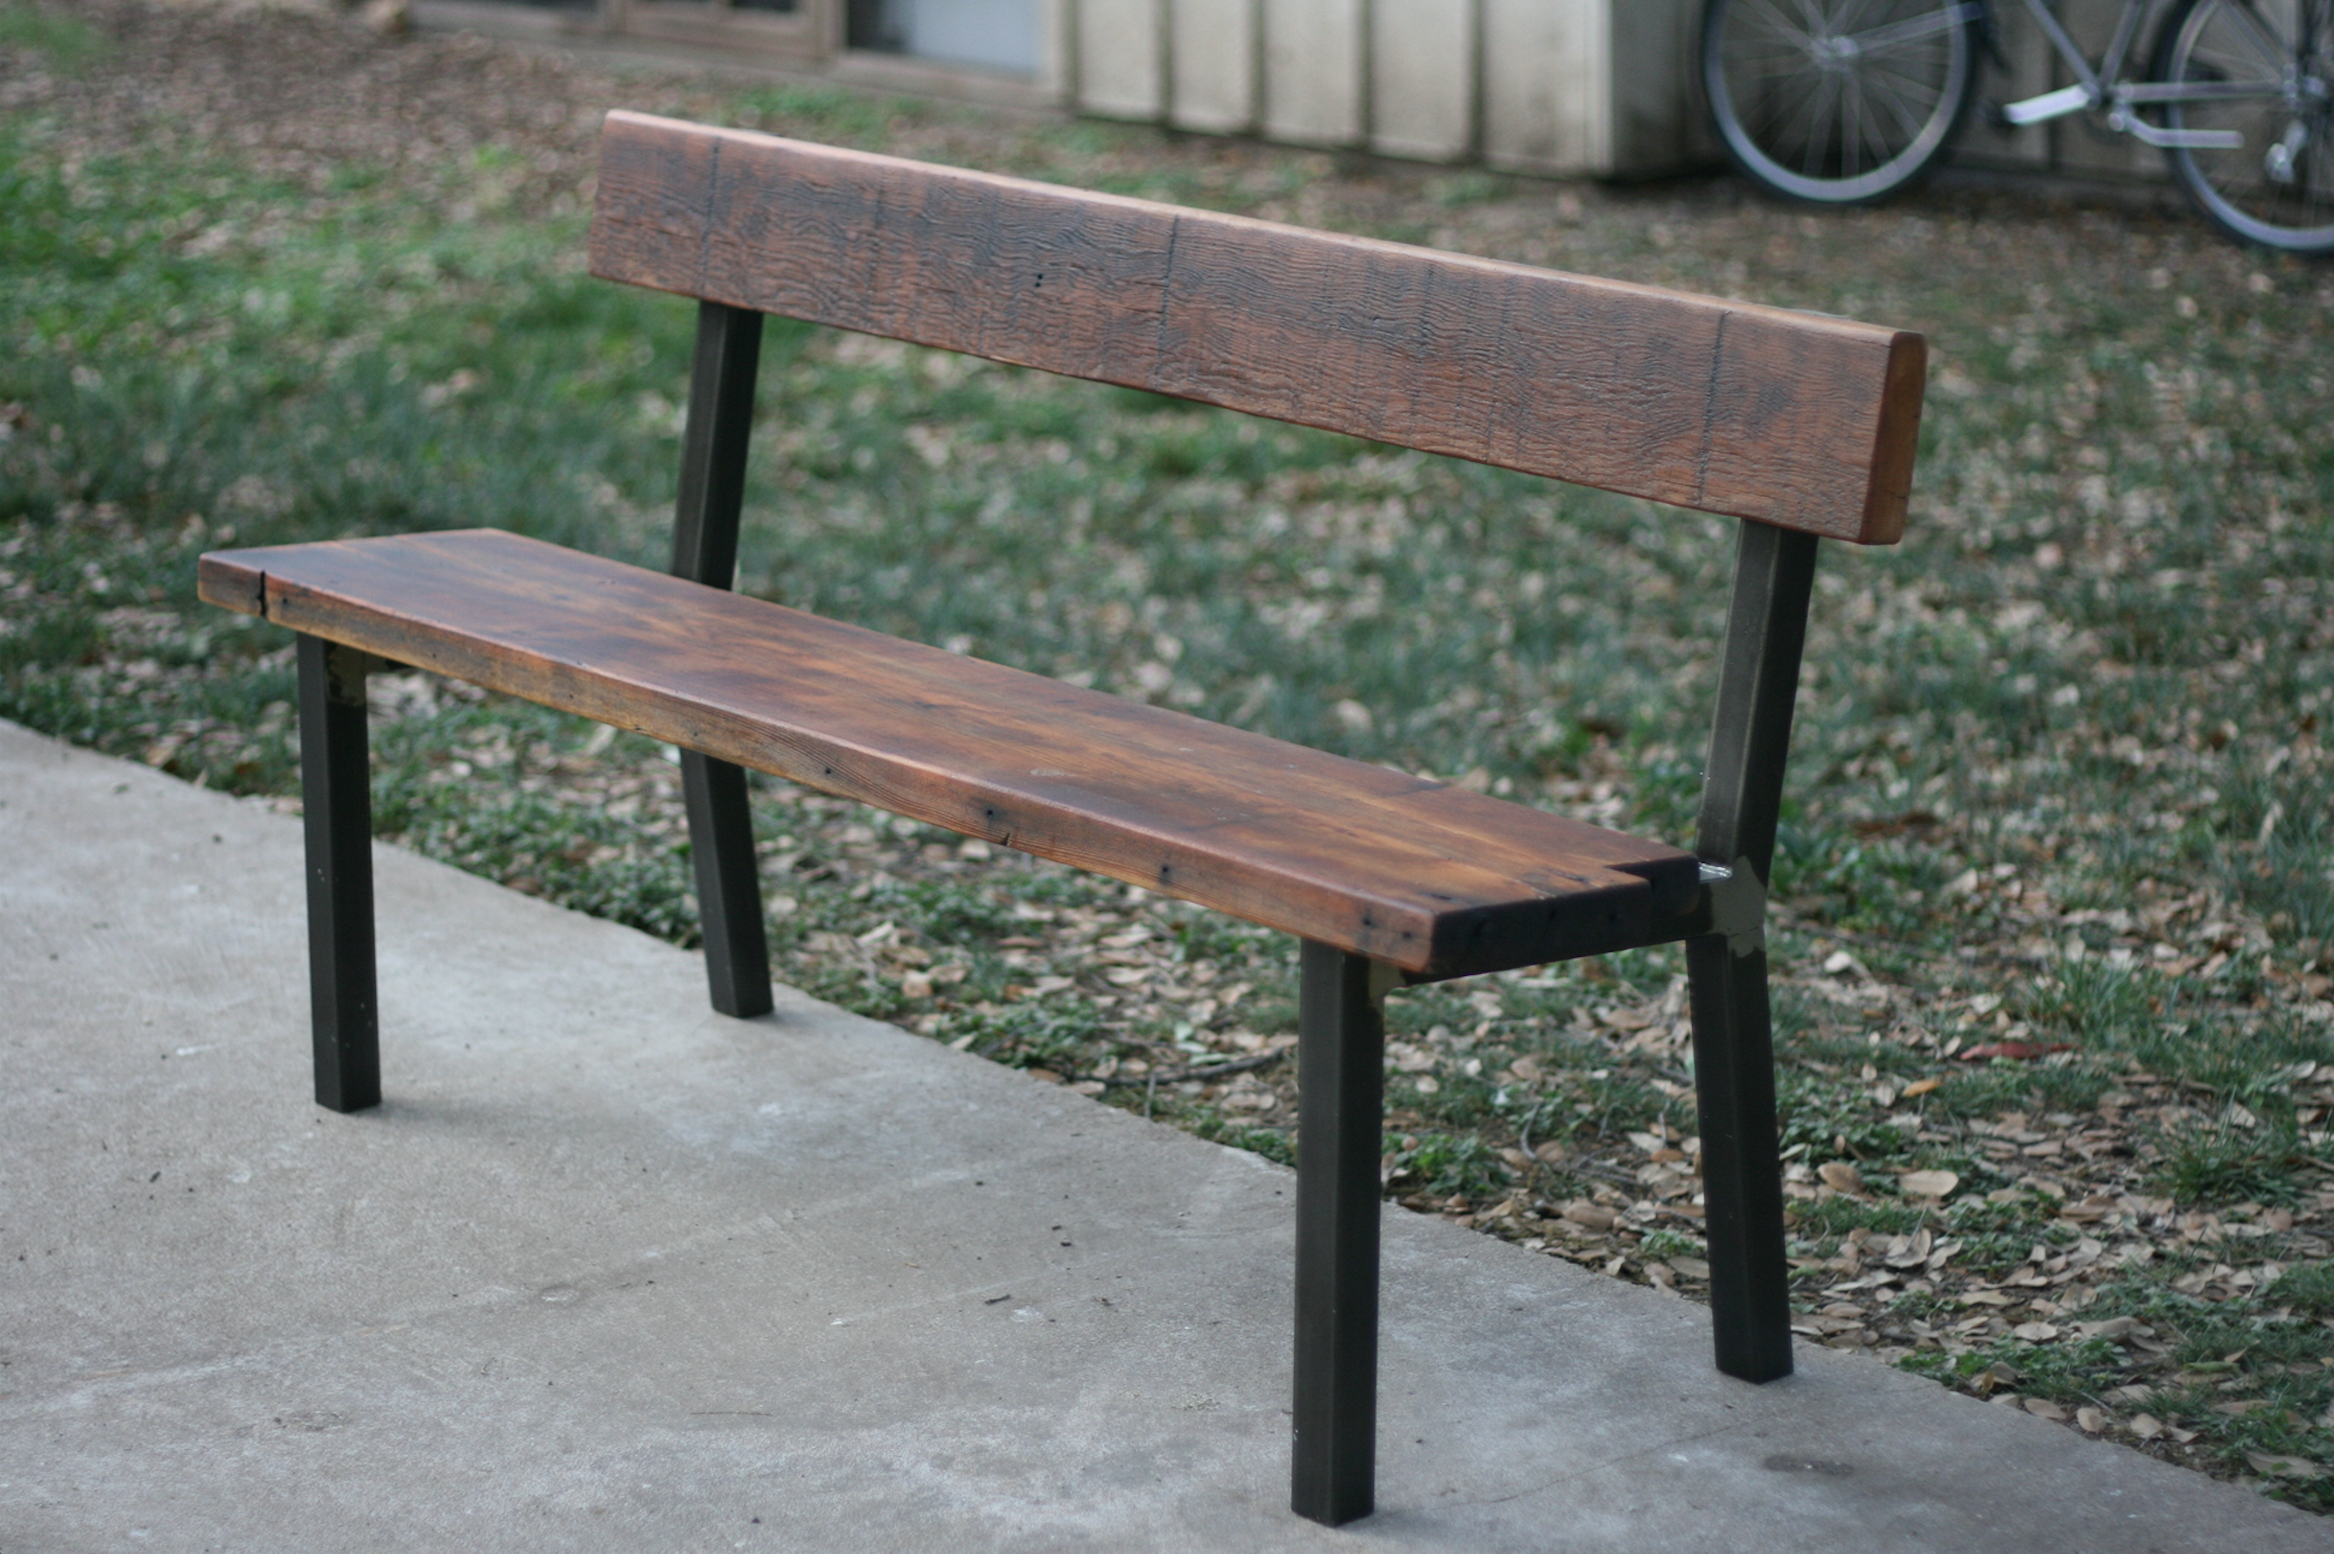 HIGH-BACKED PINE BENCH — 14 x 56 x 18 (at seat)